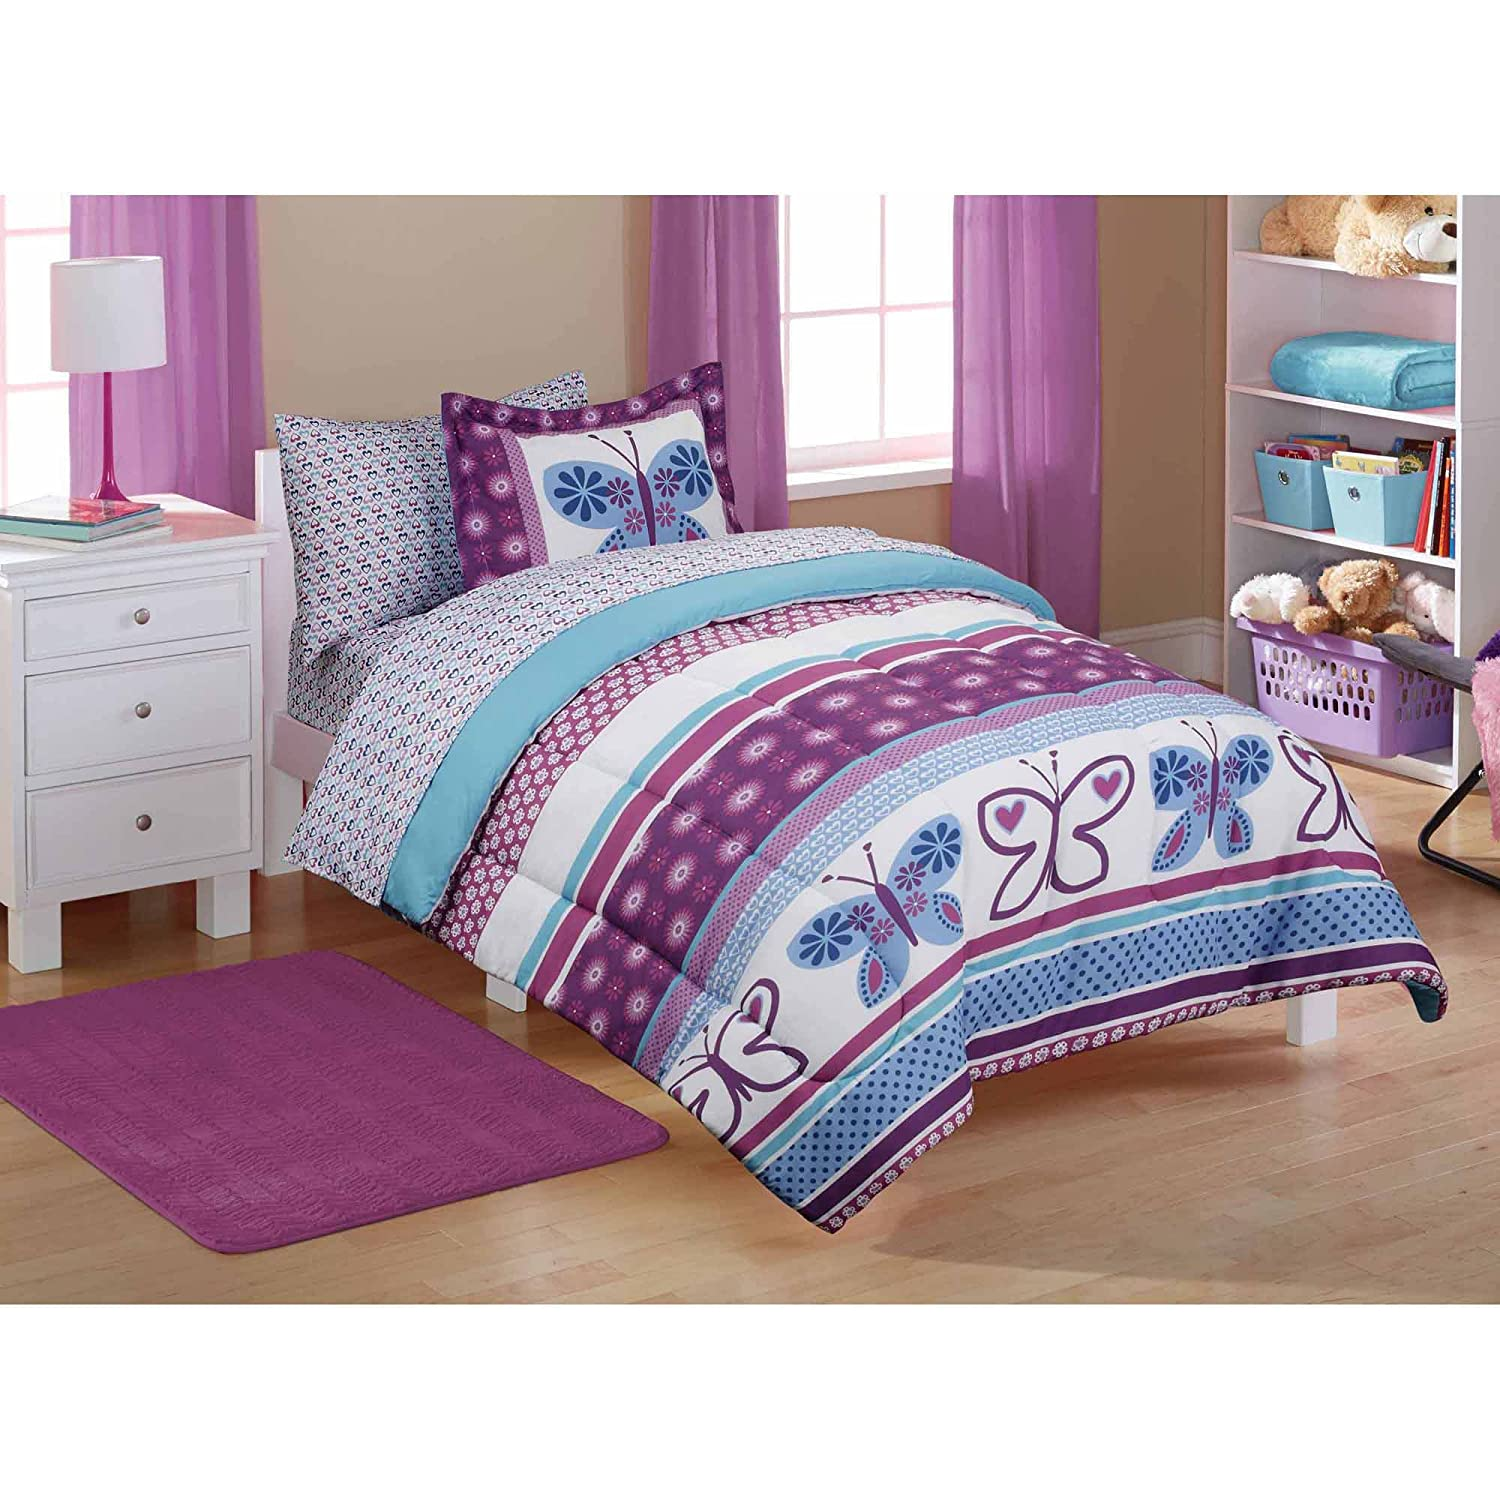 a for sheets in wk bed twin p blue bag full side or set butterflybib girls butterfly bedding comforter